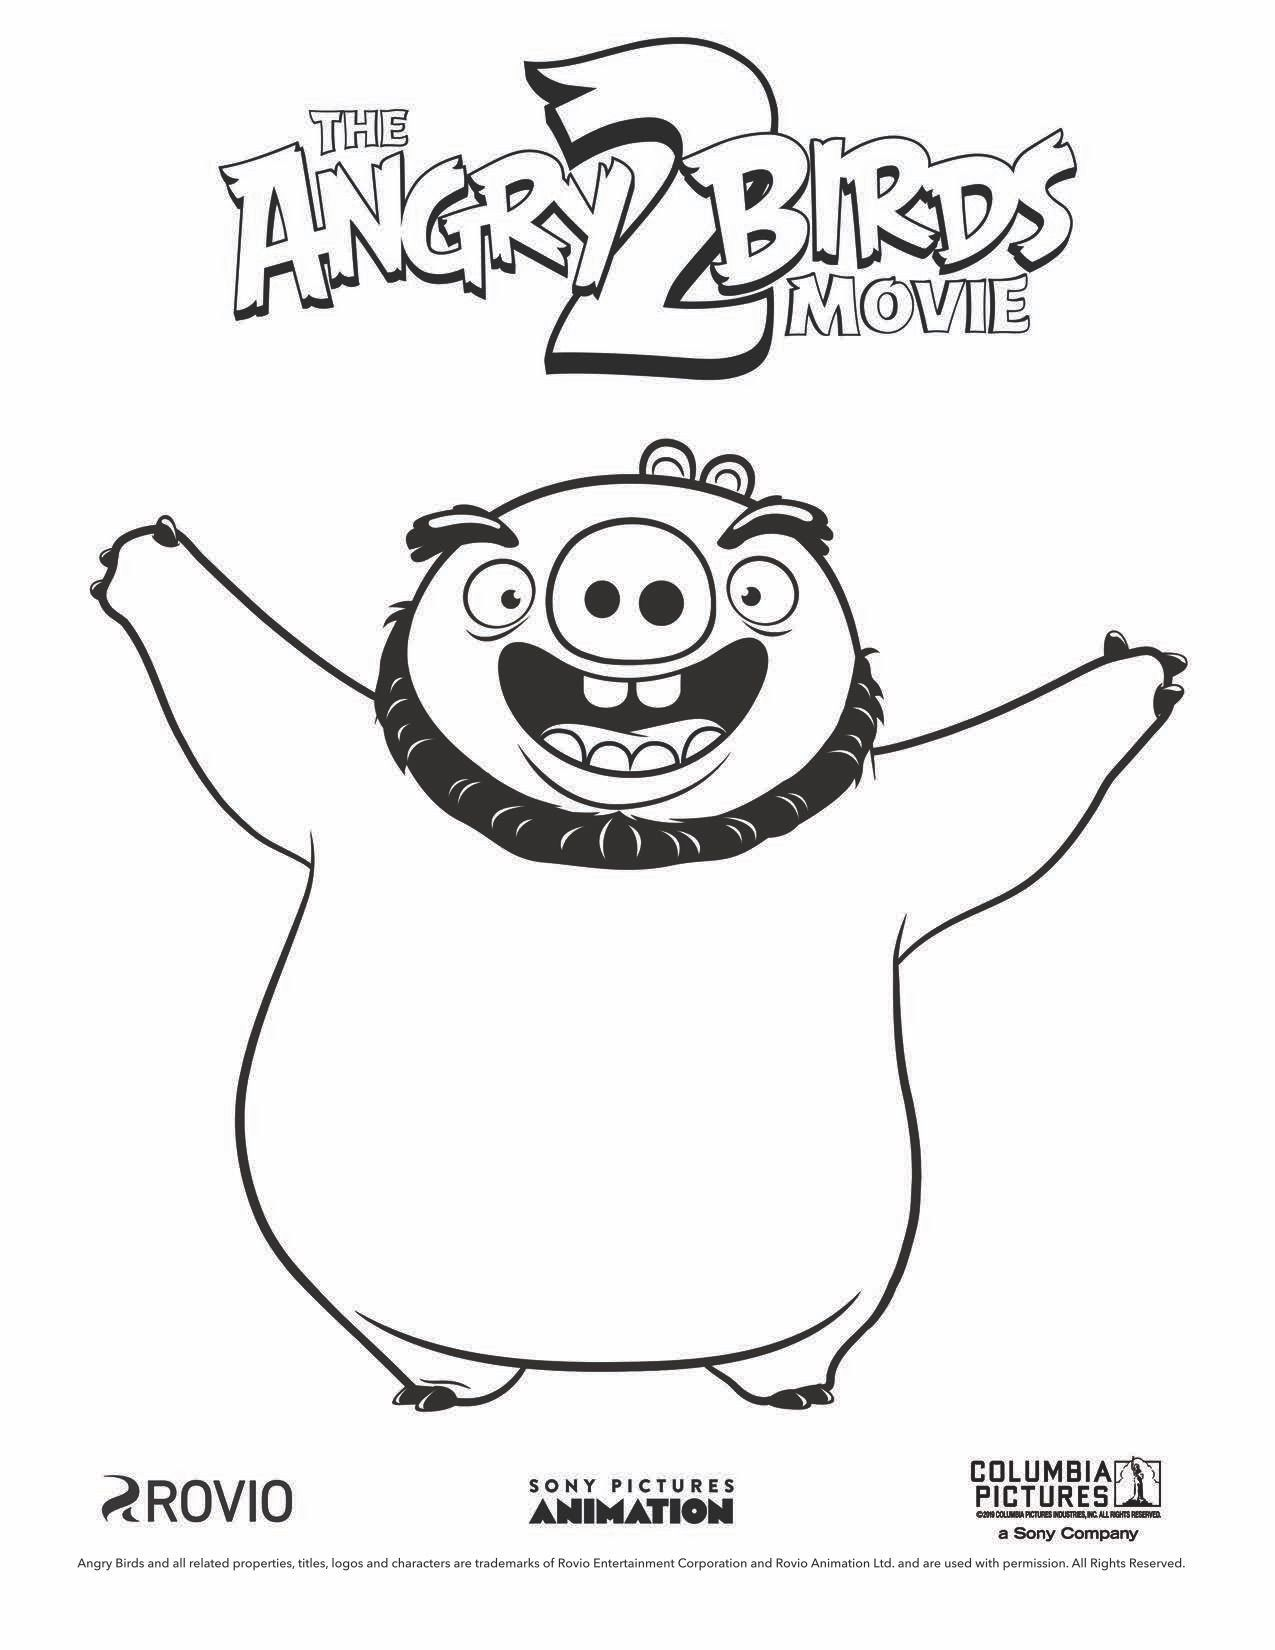 Free Angry Birds Coloring Pages Print Out This Coloring Page To Create An Im Peck Able Work In 2020 Bird Coloring Pages Coloring Books Angry Birds